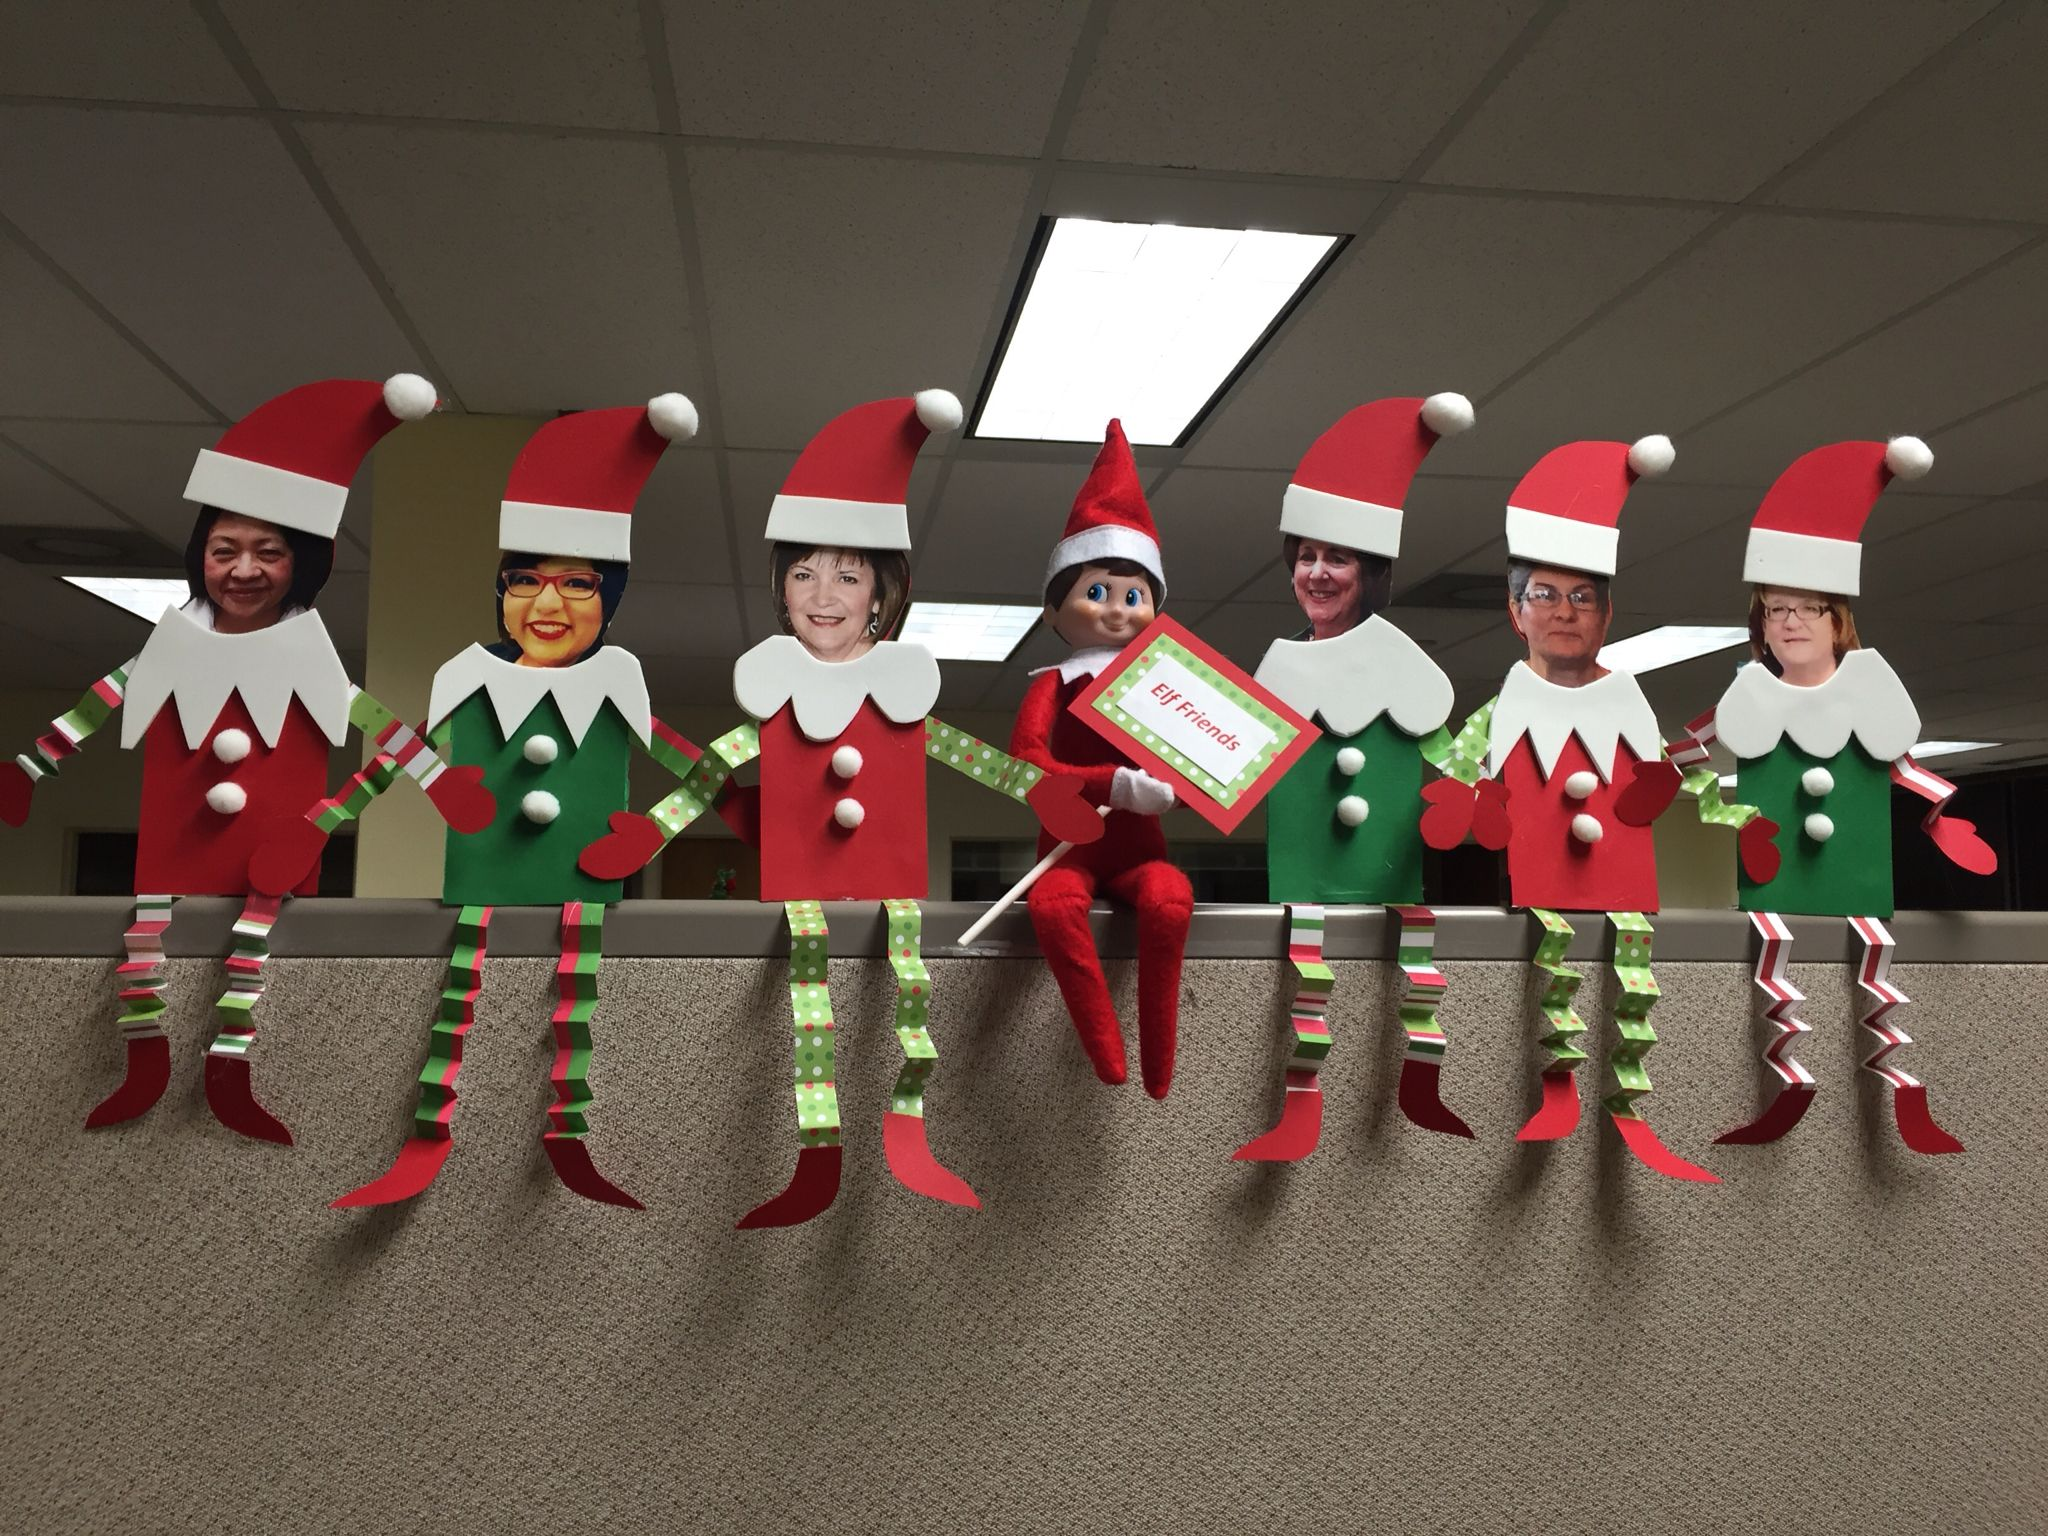 elf on the shelf at the office elf friends decoration noel christmas decoration - Christmas Decoration Games